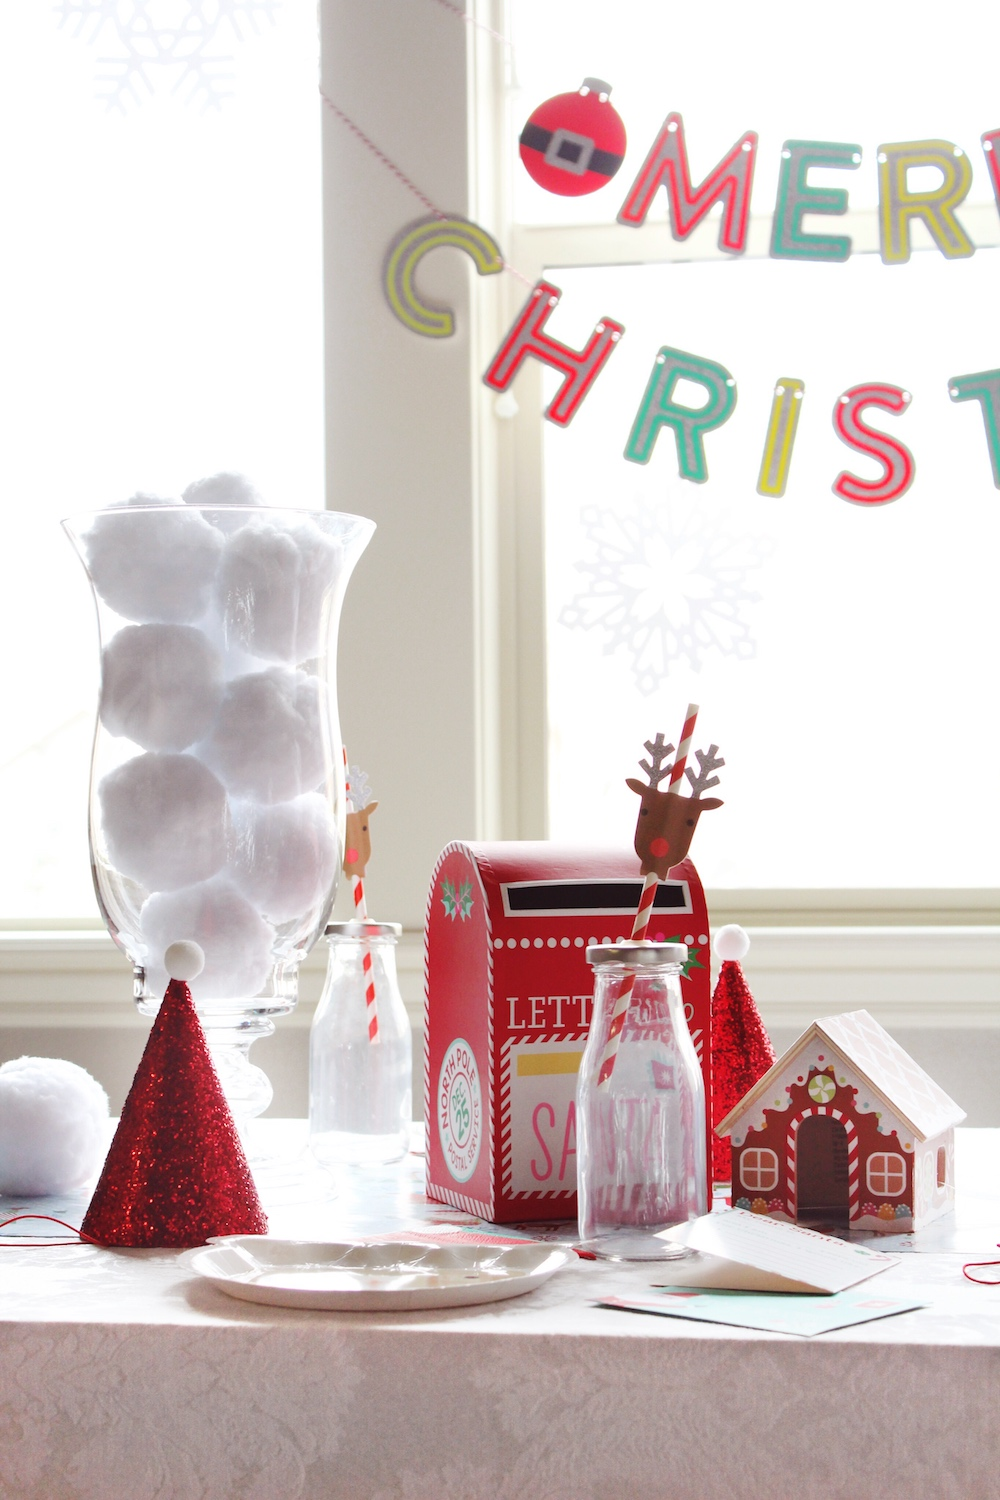 Kids Letters to Santa North Pole Party_Tablescape Decorations_Design Organize Party.jpg